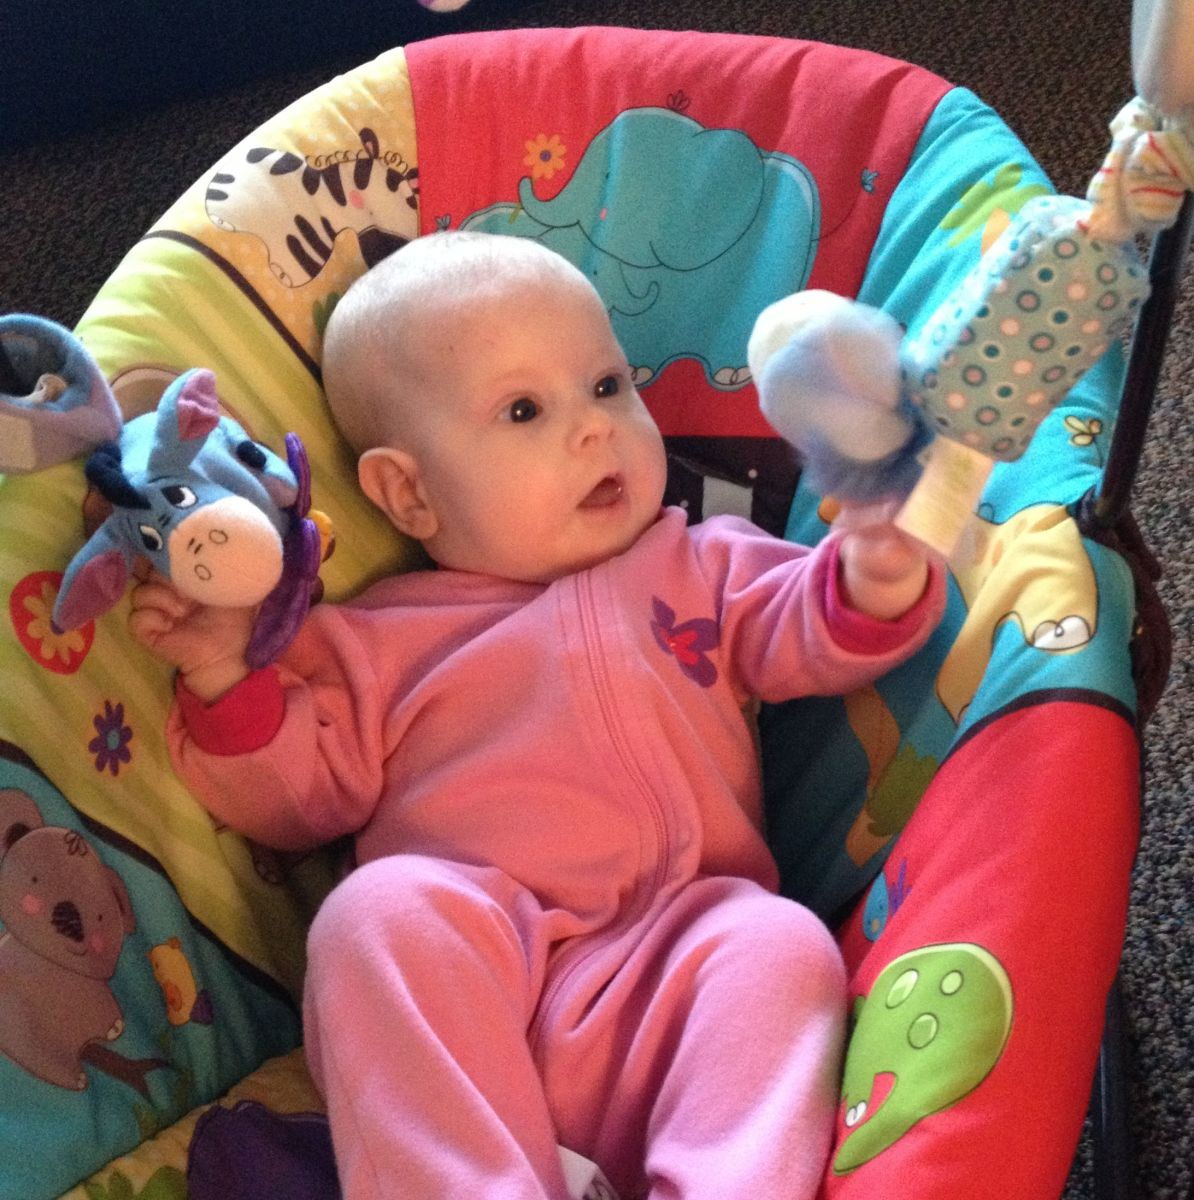 Babies have a lot of learning to do in their first year. Their development and abilities occurs rapidly.